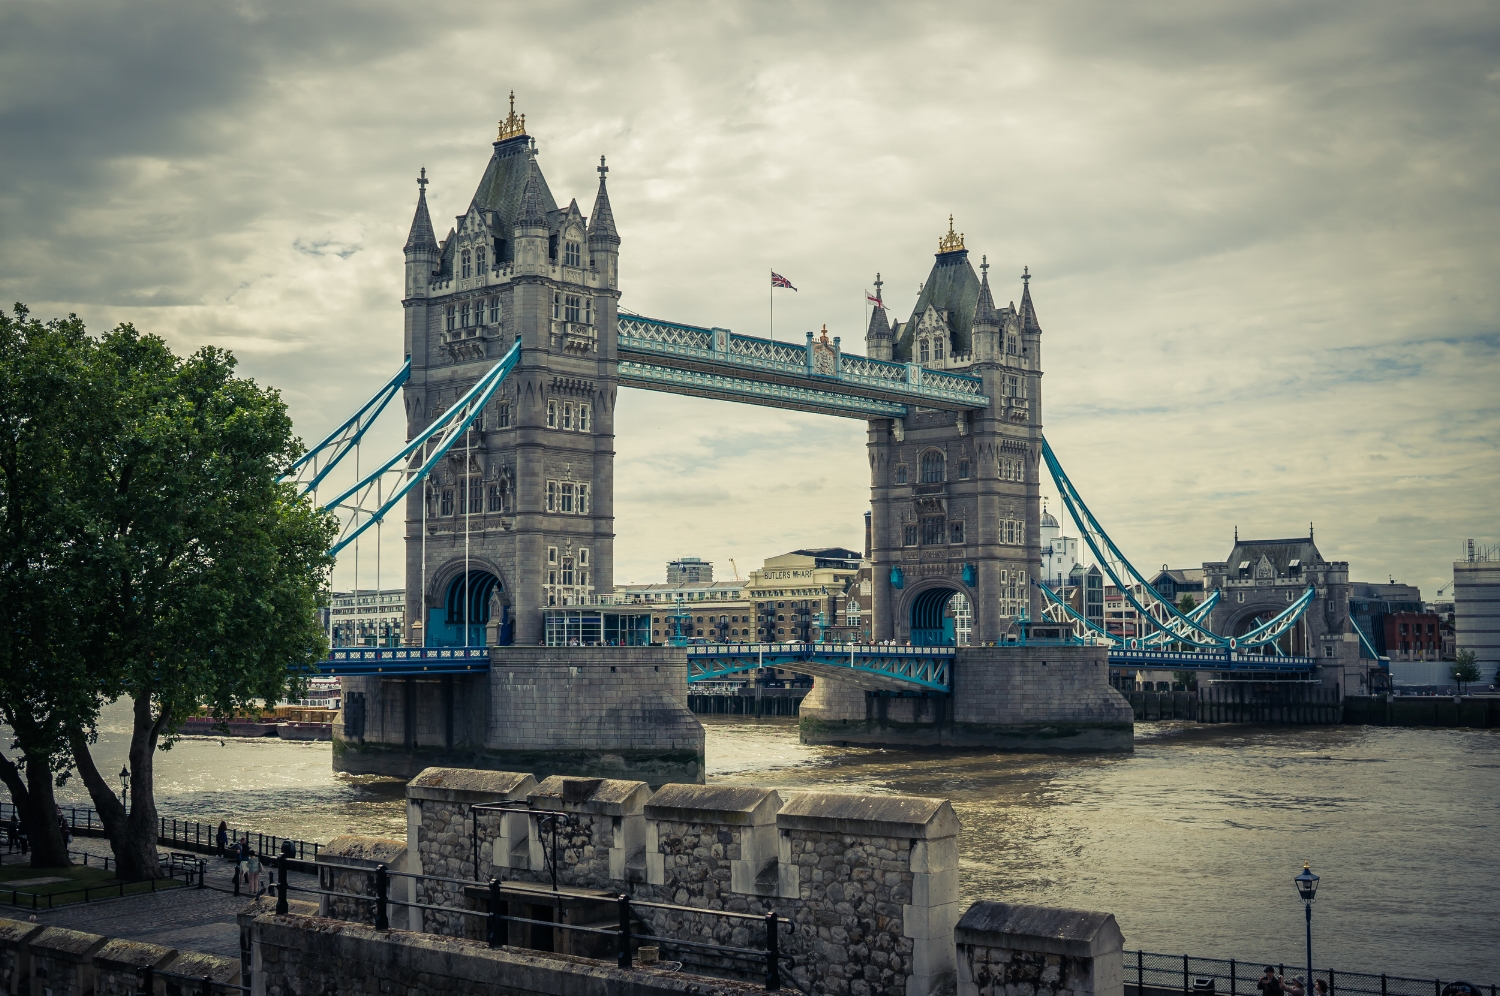 The Two Towers - London, England